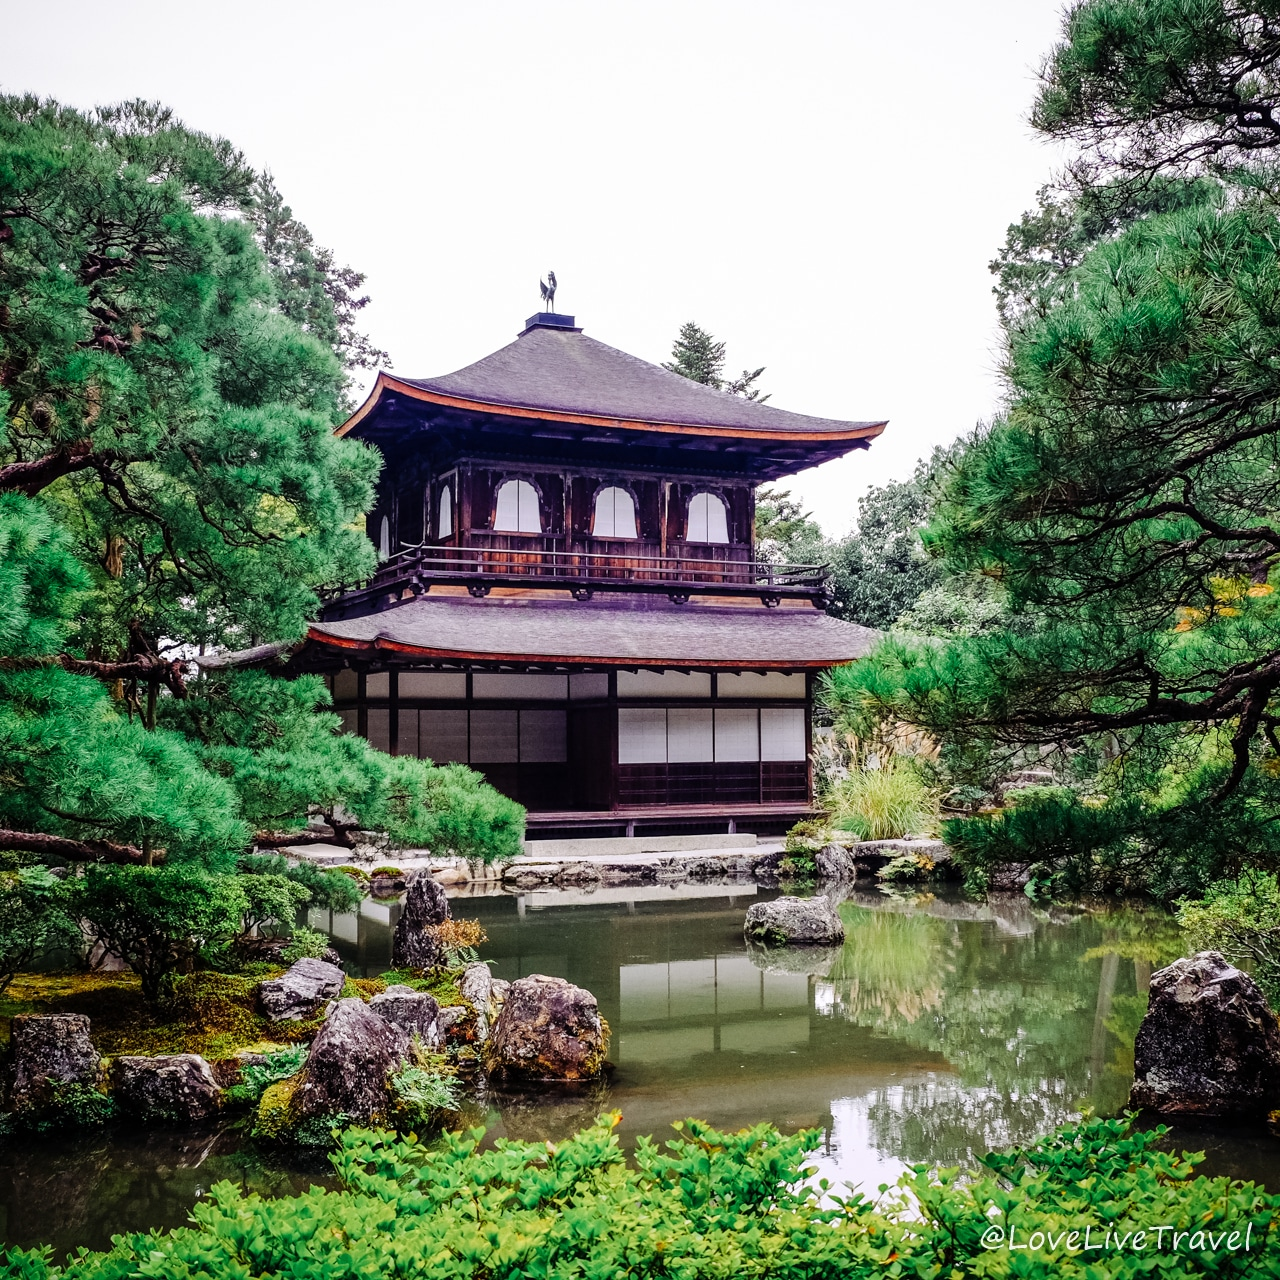 Ginkakuji temple du pavillon d'argent Kyoto Japon Blog Voyage Lovelivetravel